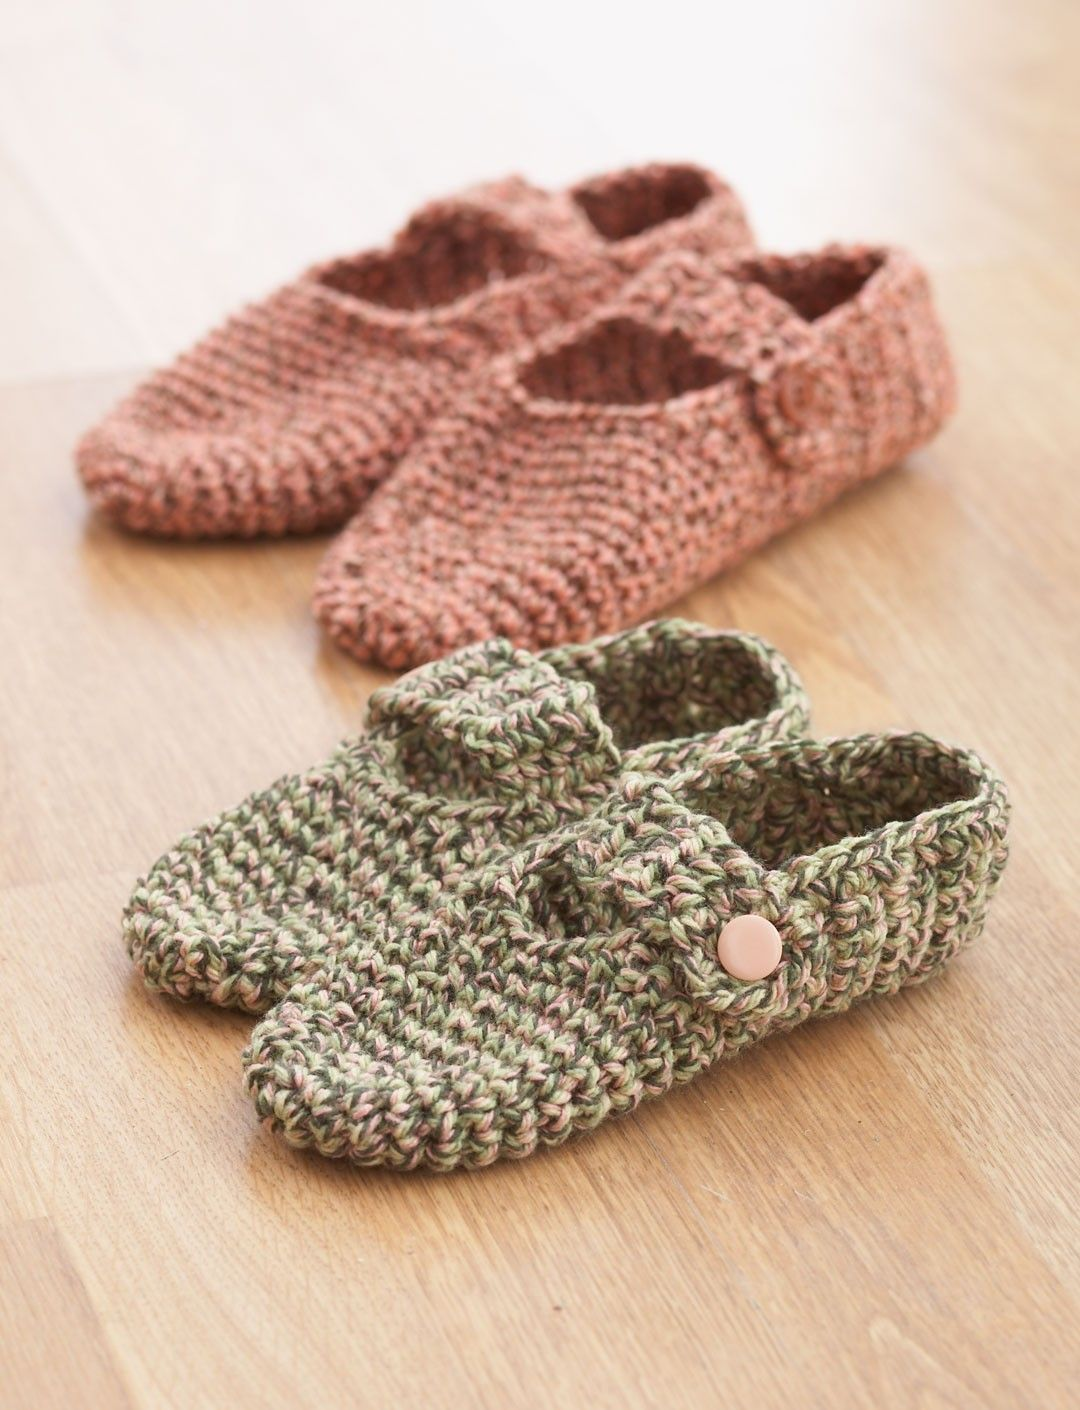 Yarnspirations.com - Bernat Crochet Slippers | Yarnspirations ...